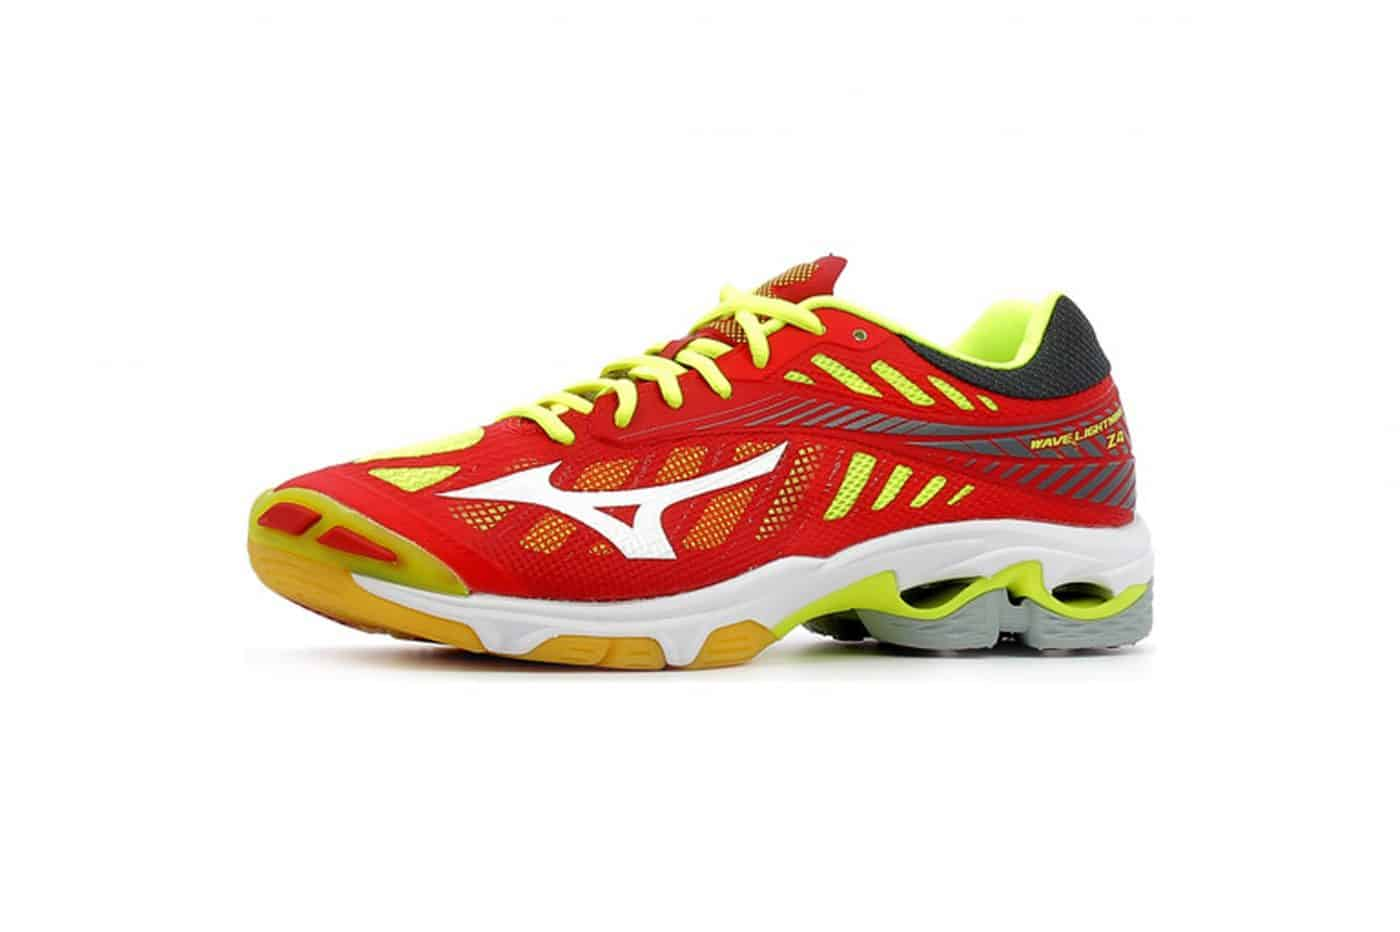 David-Balaguer-mizuno-wave-lightning-5